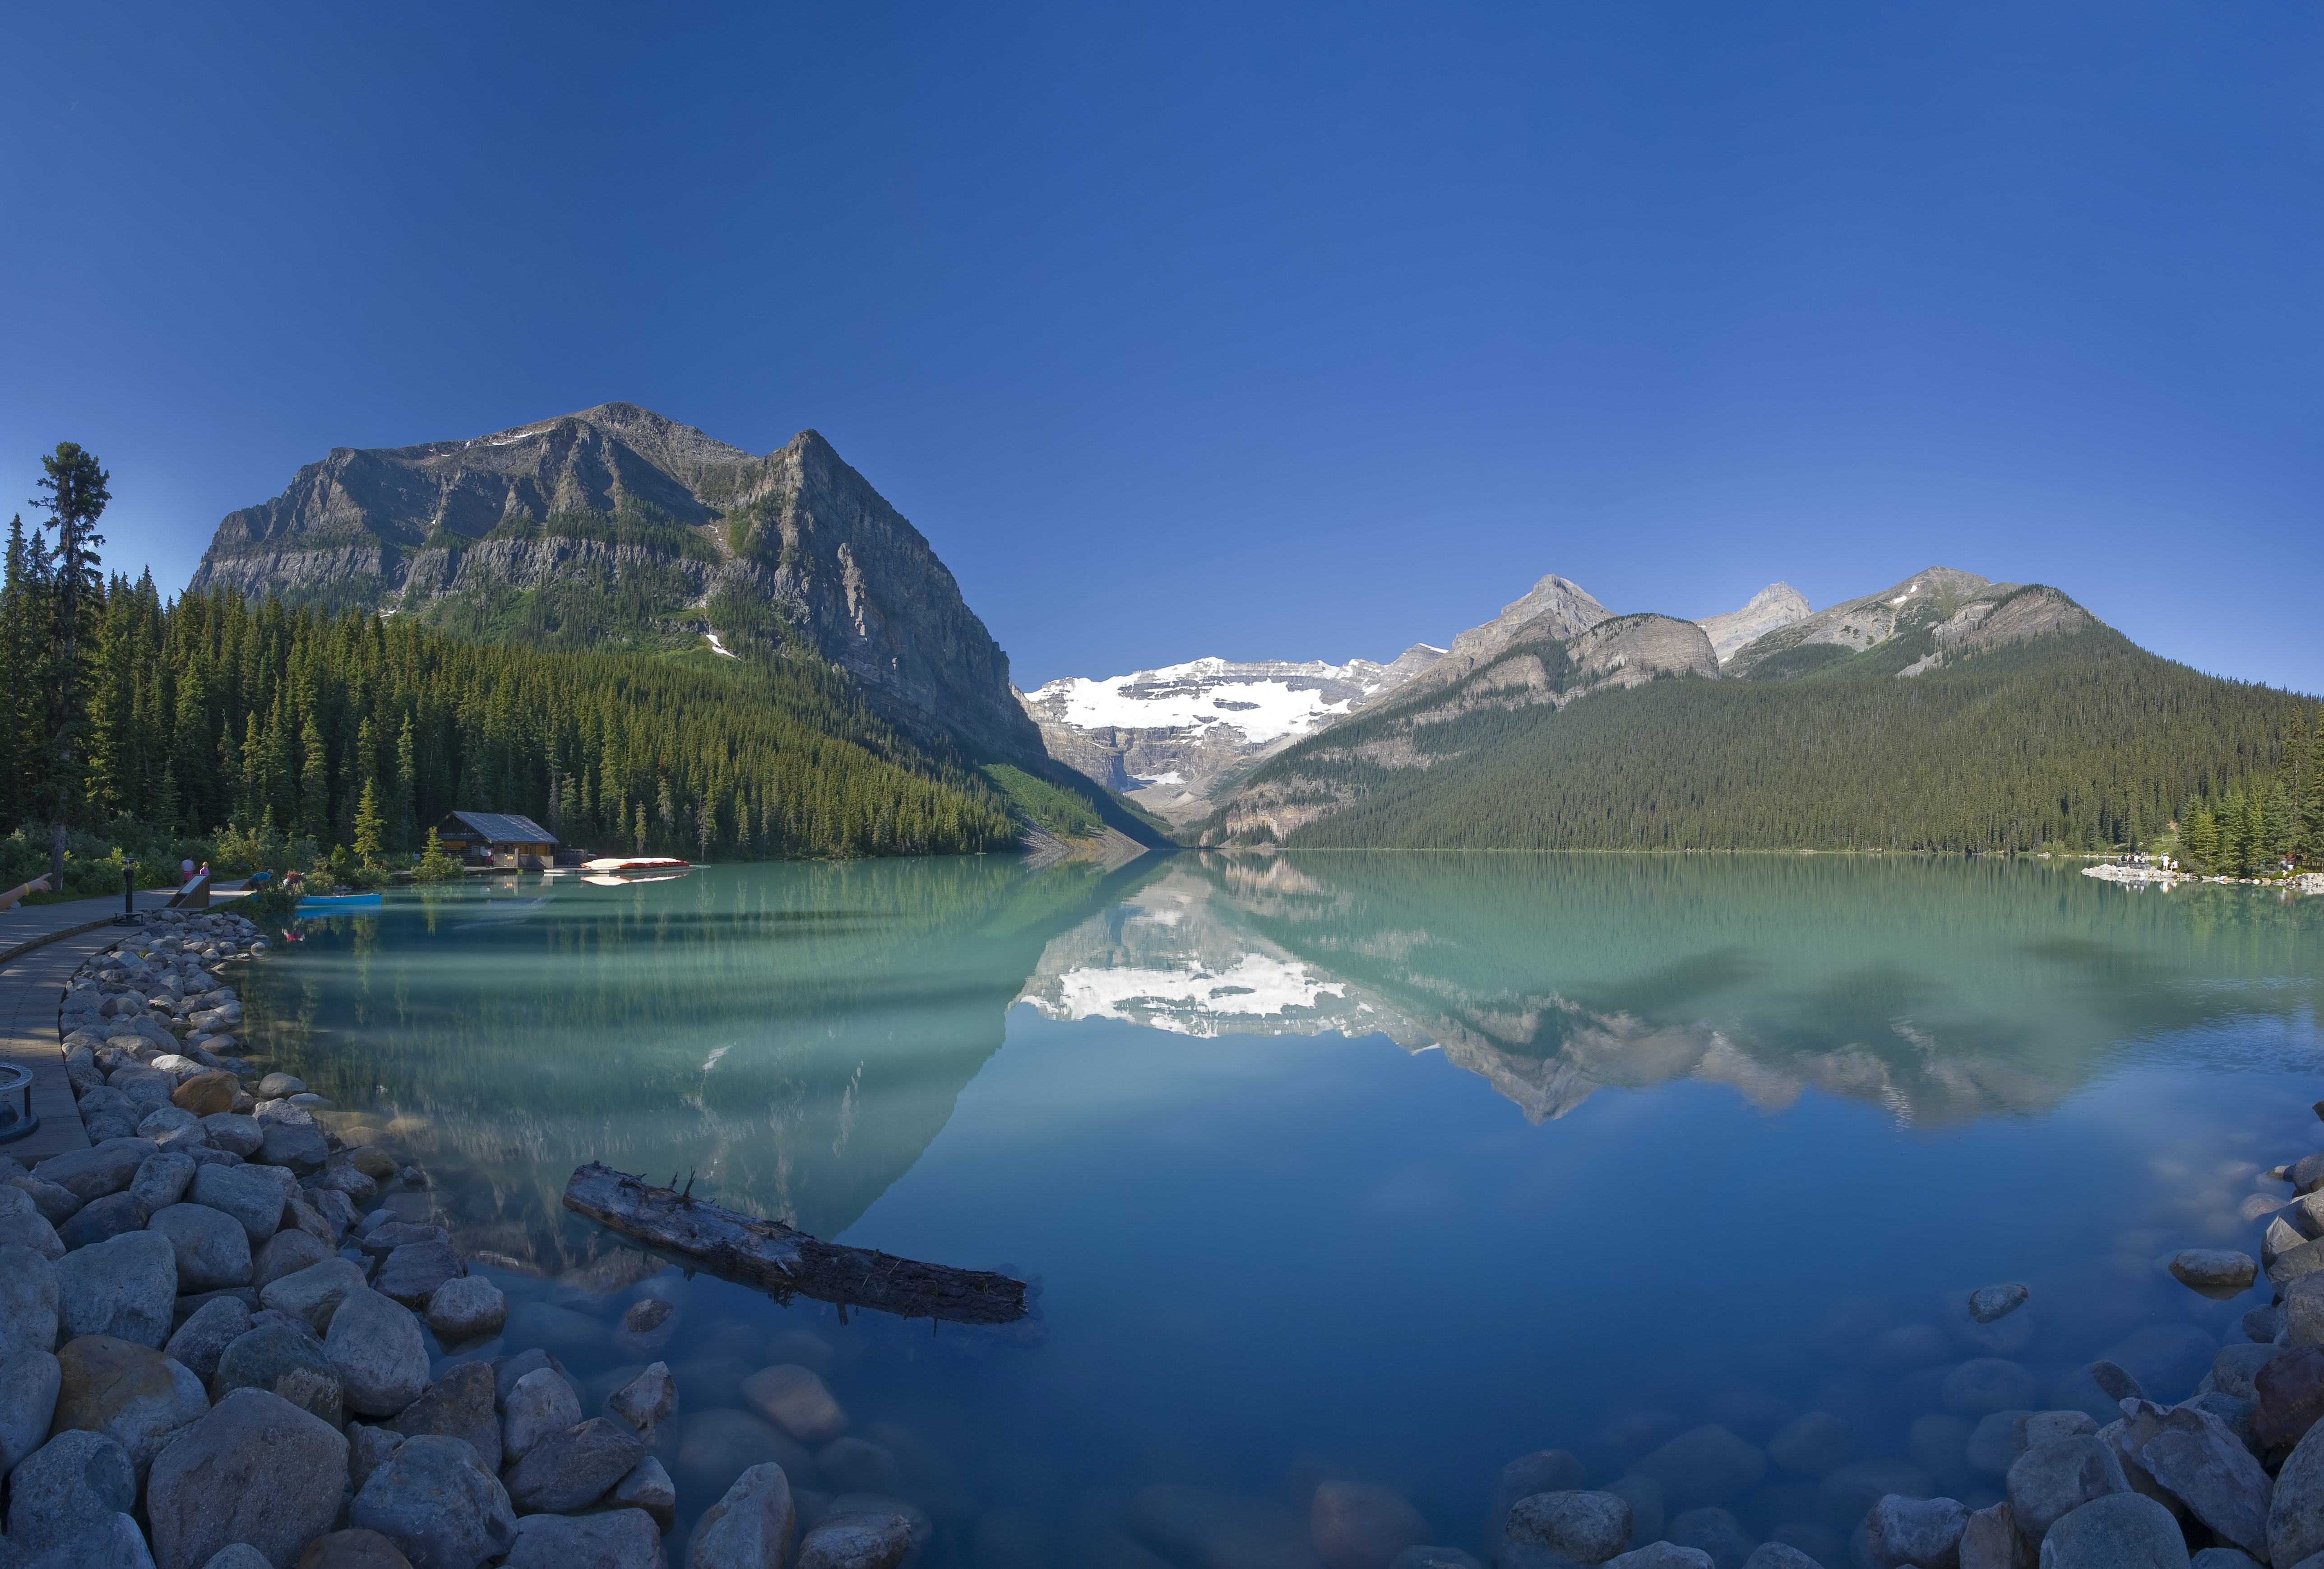 Alberta, Canada - Lonely Planet